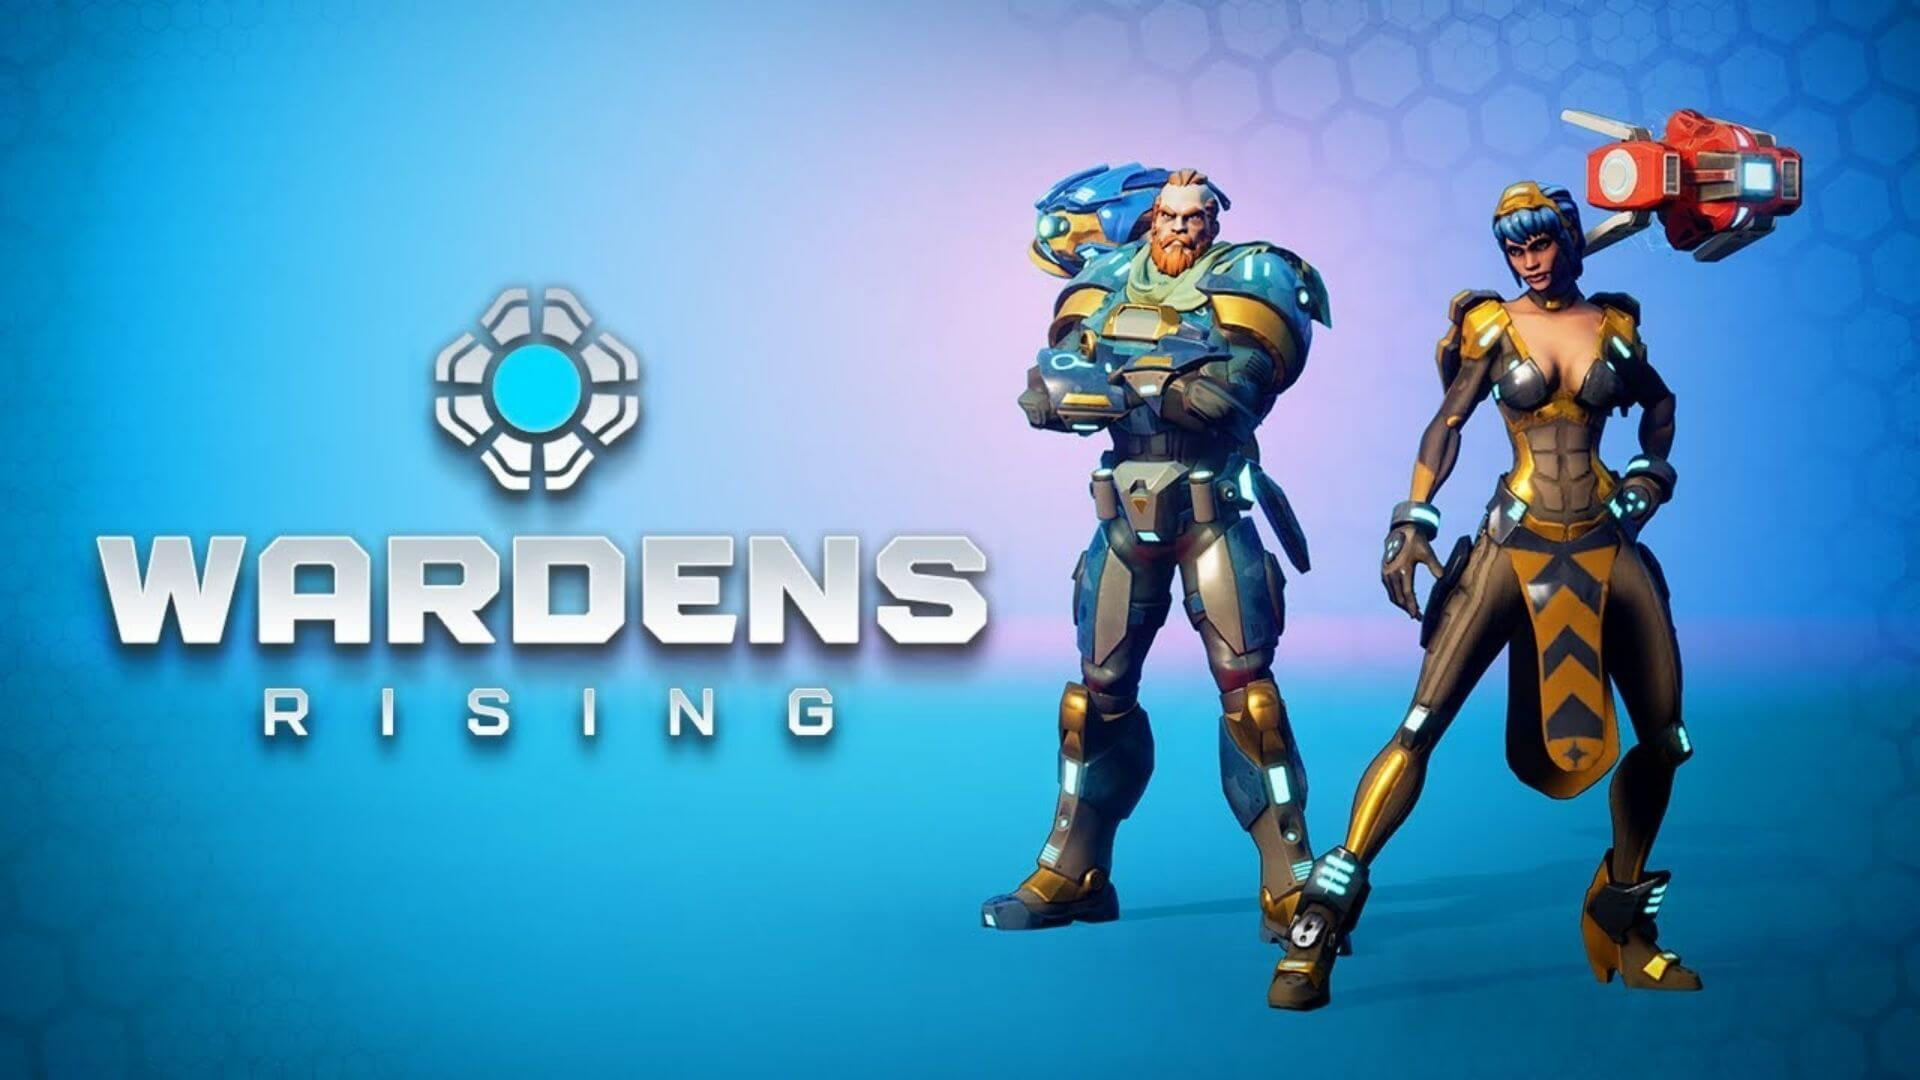 Wardens Rising PvE MOBA Announced from Big Moxi Games